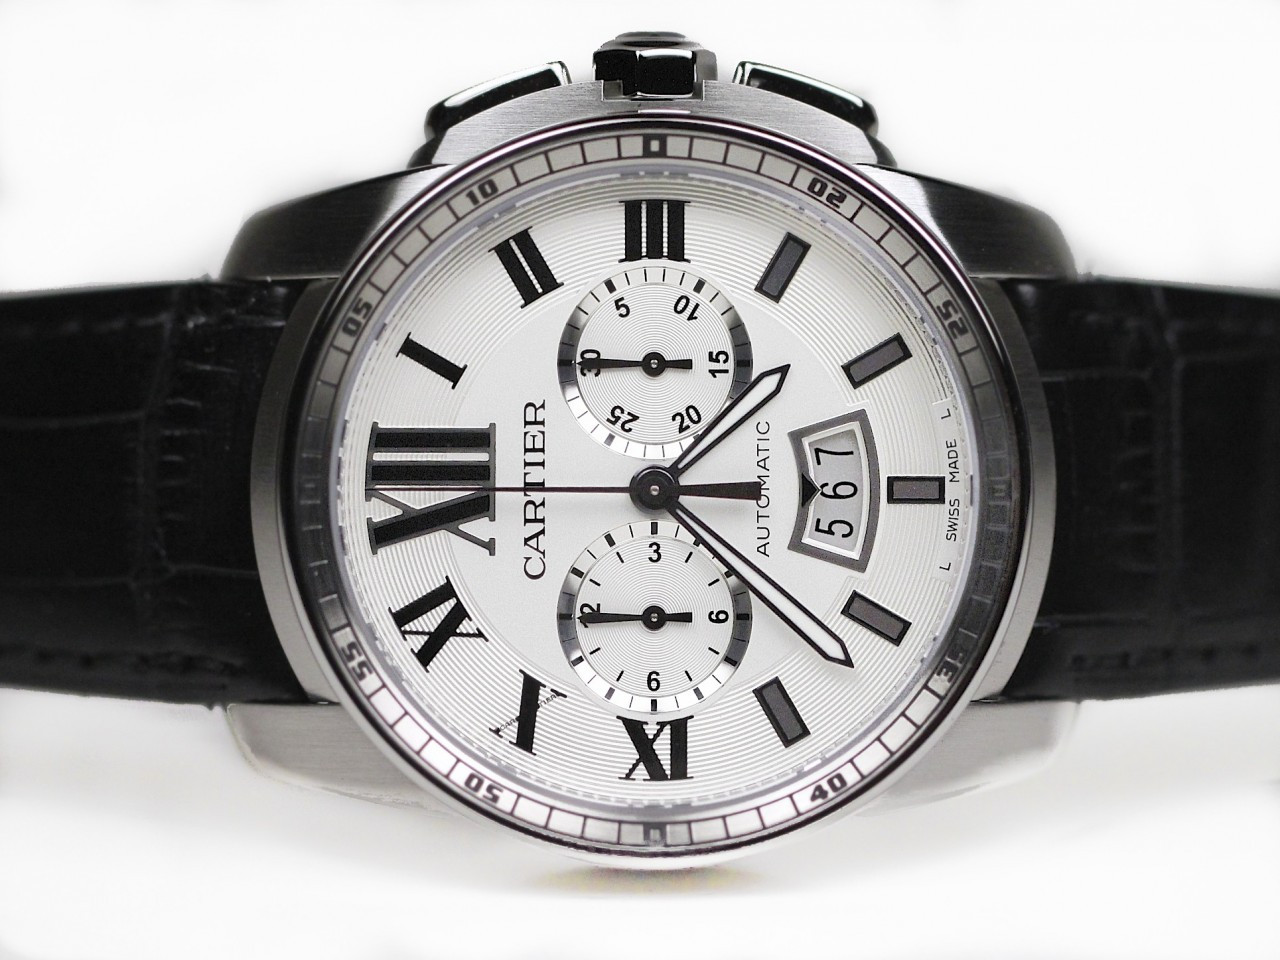 Cartier Watches Cartier Watch Caliber De Cartier Chronograph On A Strap